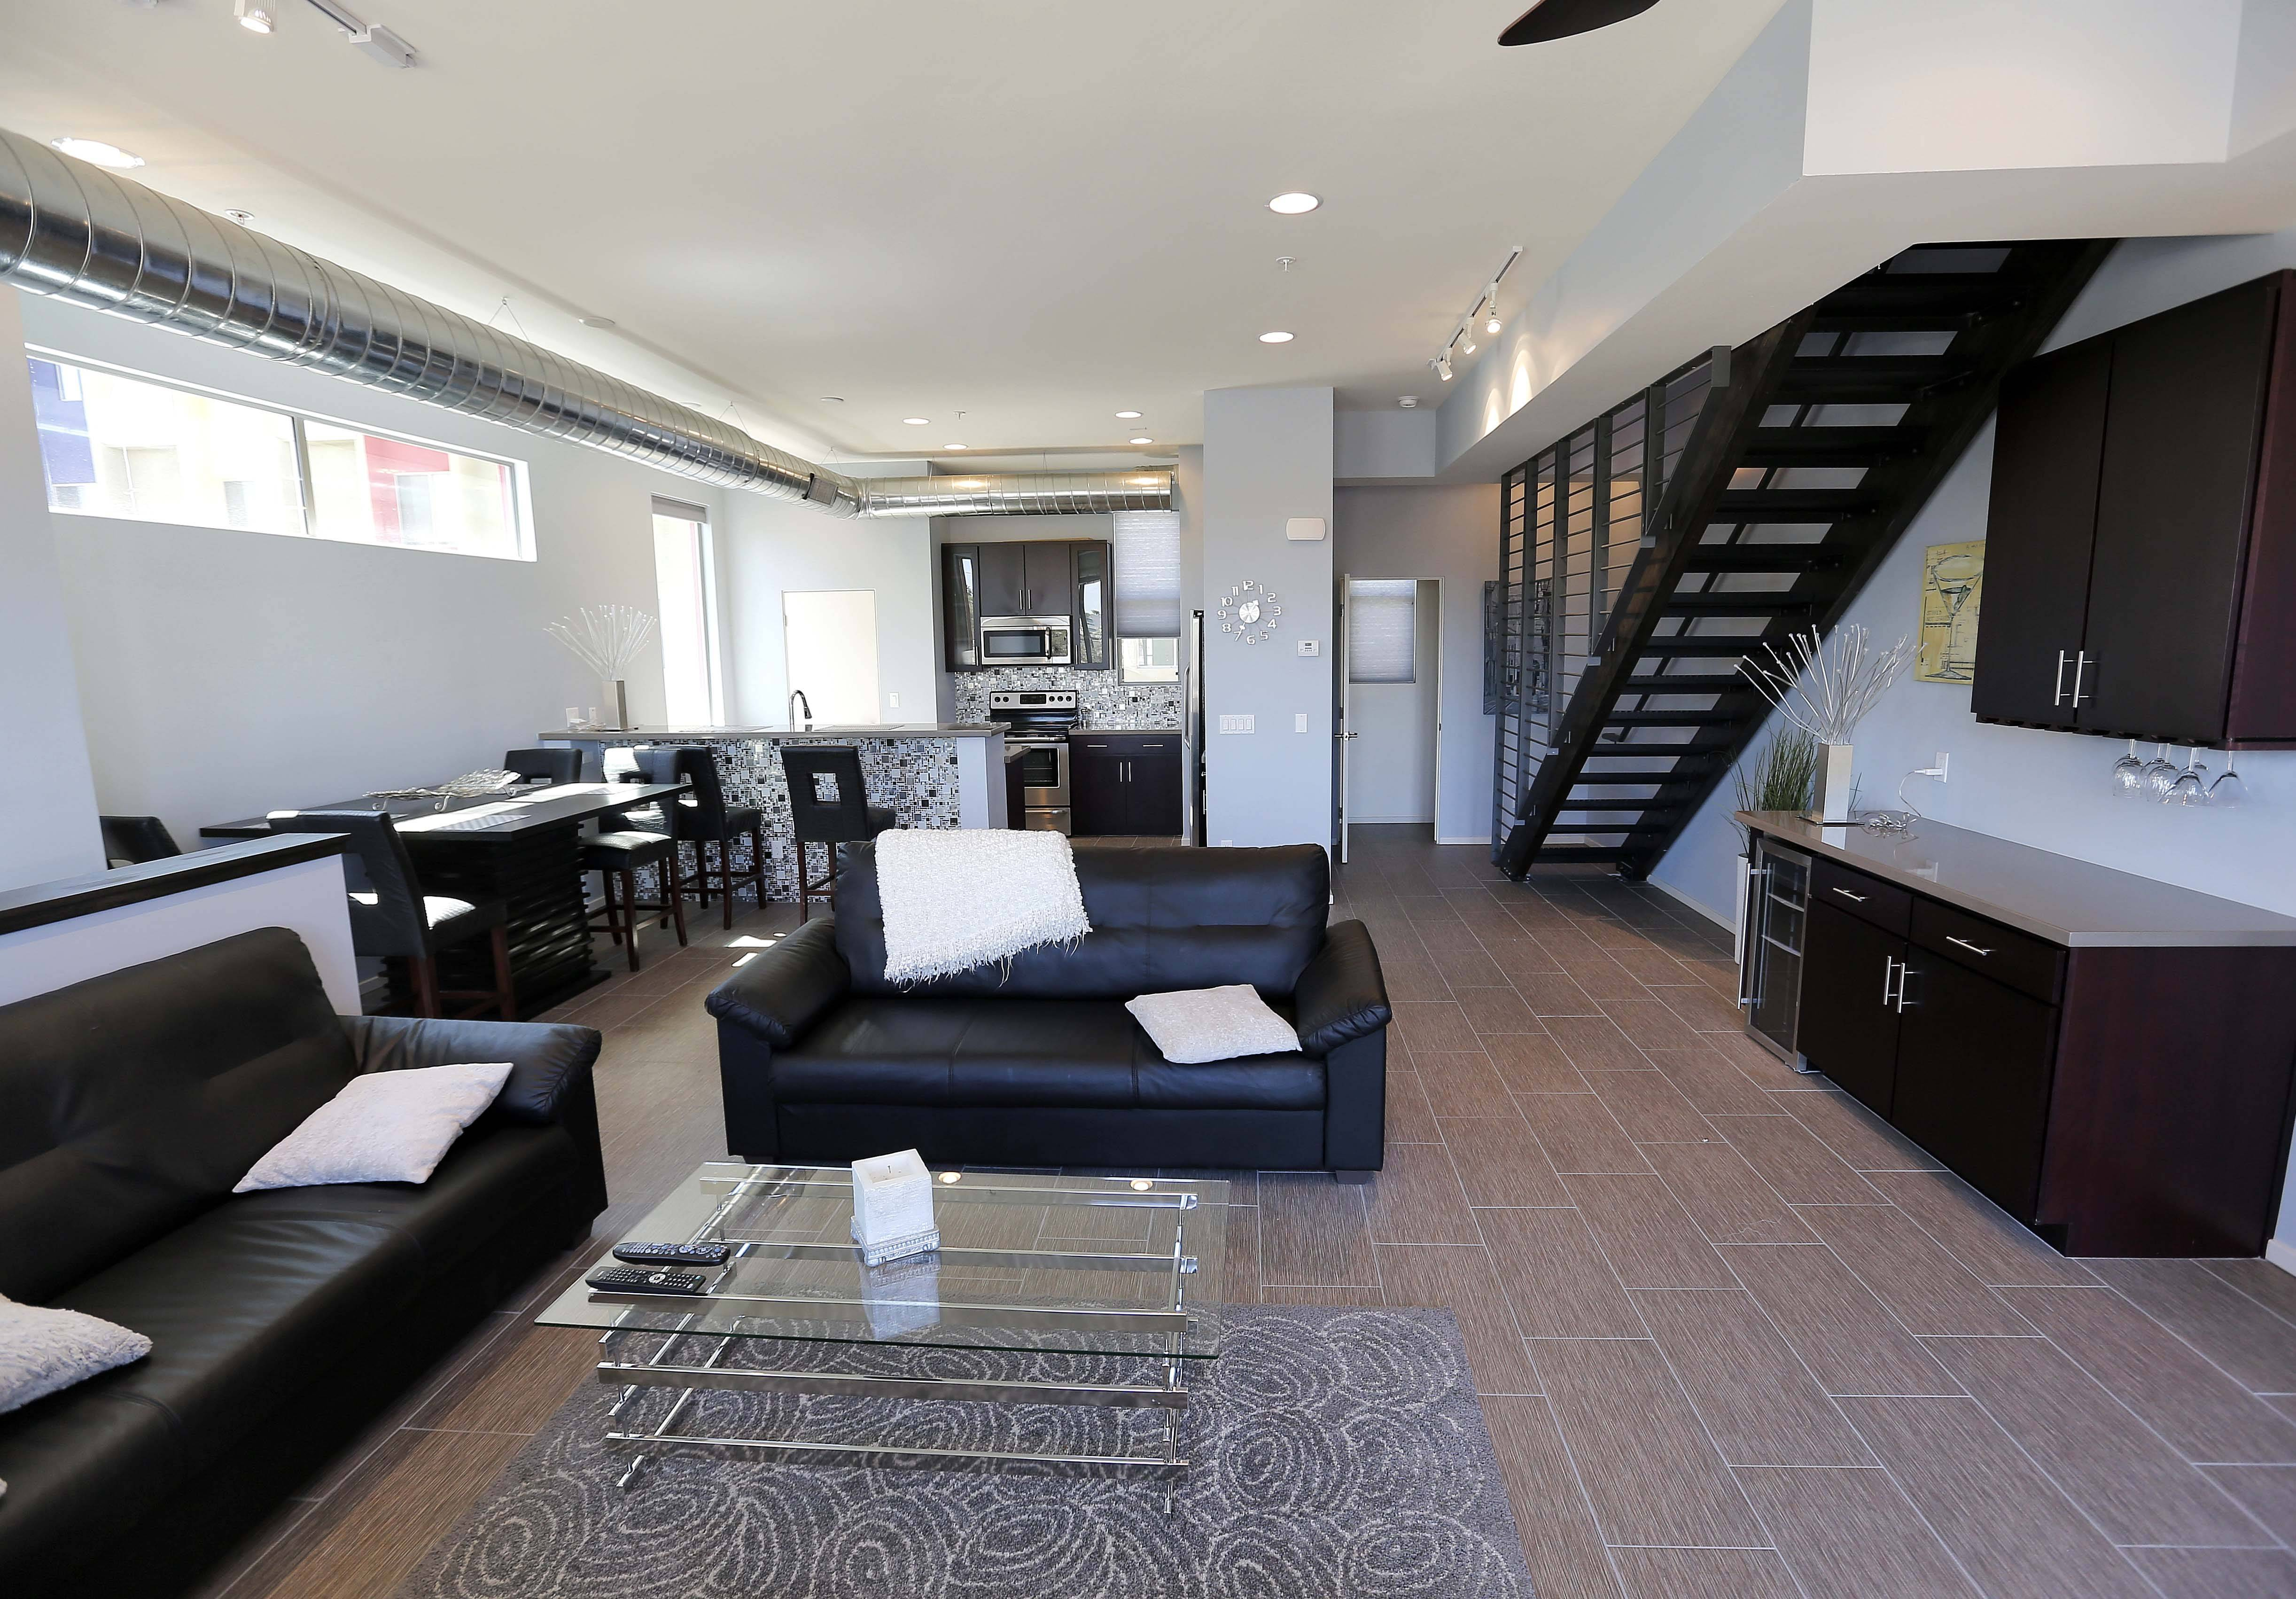 This June 4, 2014 photo shows the interior of attorney Tim Nelson's home at the newly built Portland townhouse development in Phoenix. Americans like Nelson increasingly say they prefer to live near the centers of cities and towns, where commutes tend to be easier and culture, restaurants and entertainment close by. It marks a pronounced shift away from the yearning for open suburban space that drove U.S. home construction for decades.